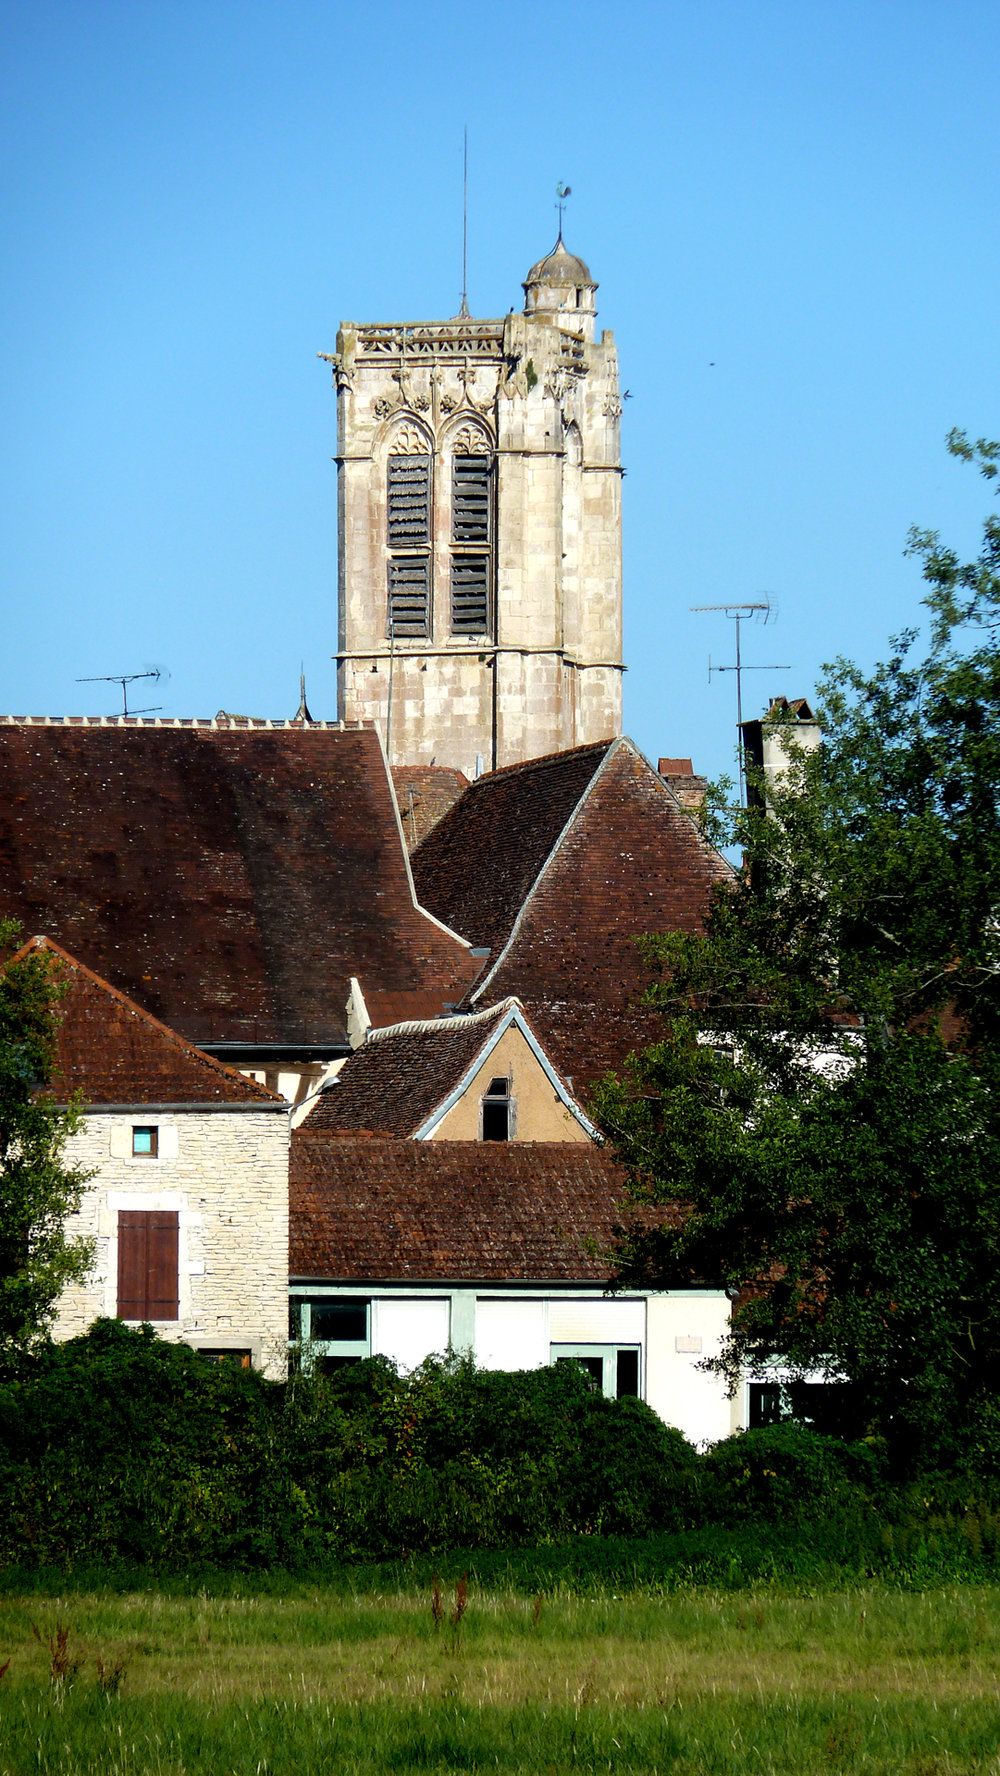 The 15th century church, Noyers, photo J. Cook